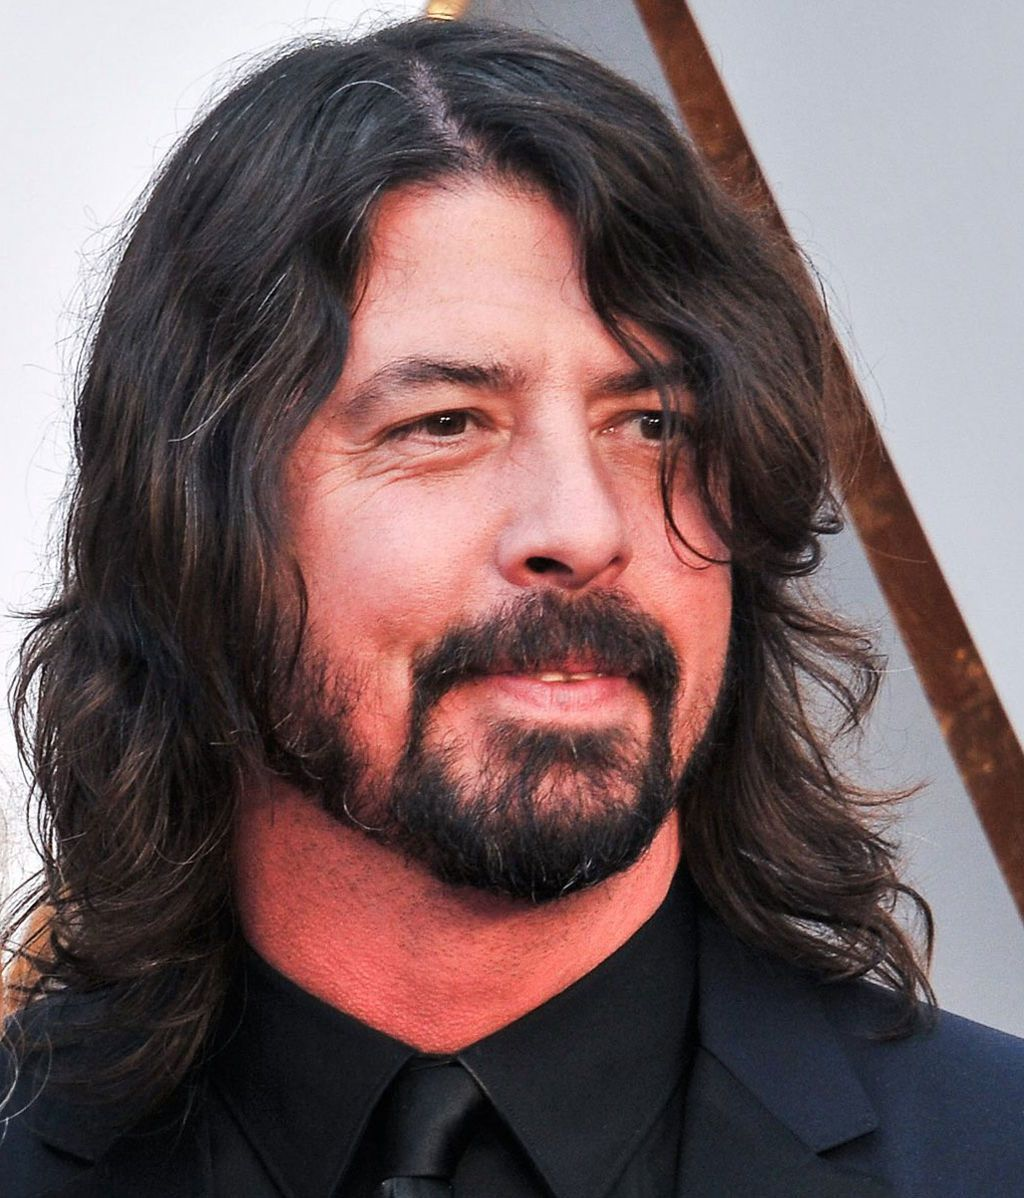 Dave Grohl, líder de Foo Fighters y ex batería de Nirvana